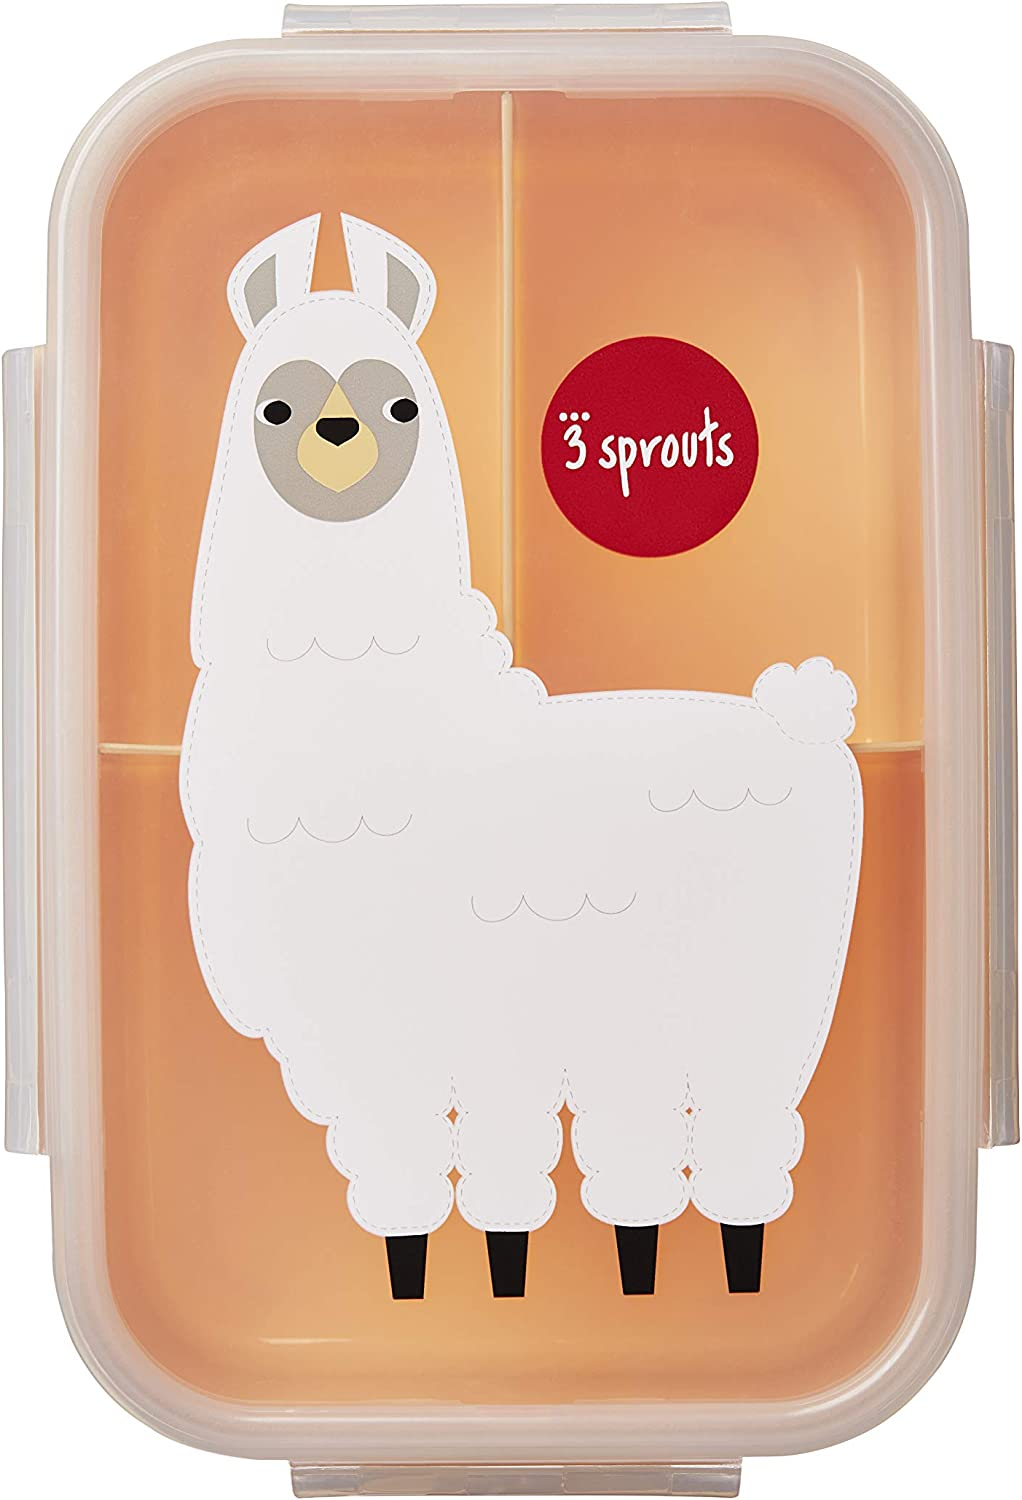 llama 3 Sprouts Lunch Bento Box 3 Compartment Lunchbox Container for Kids